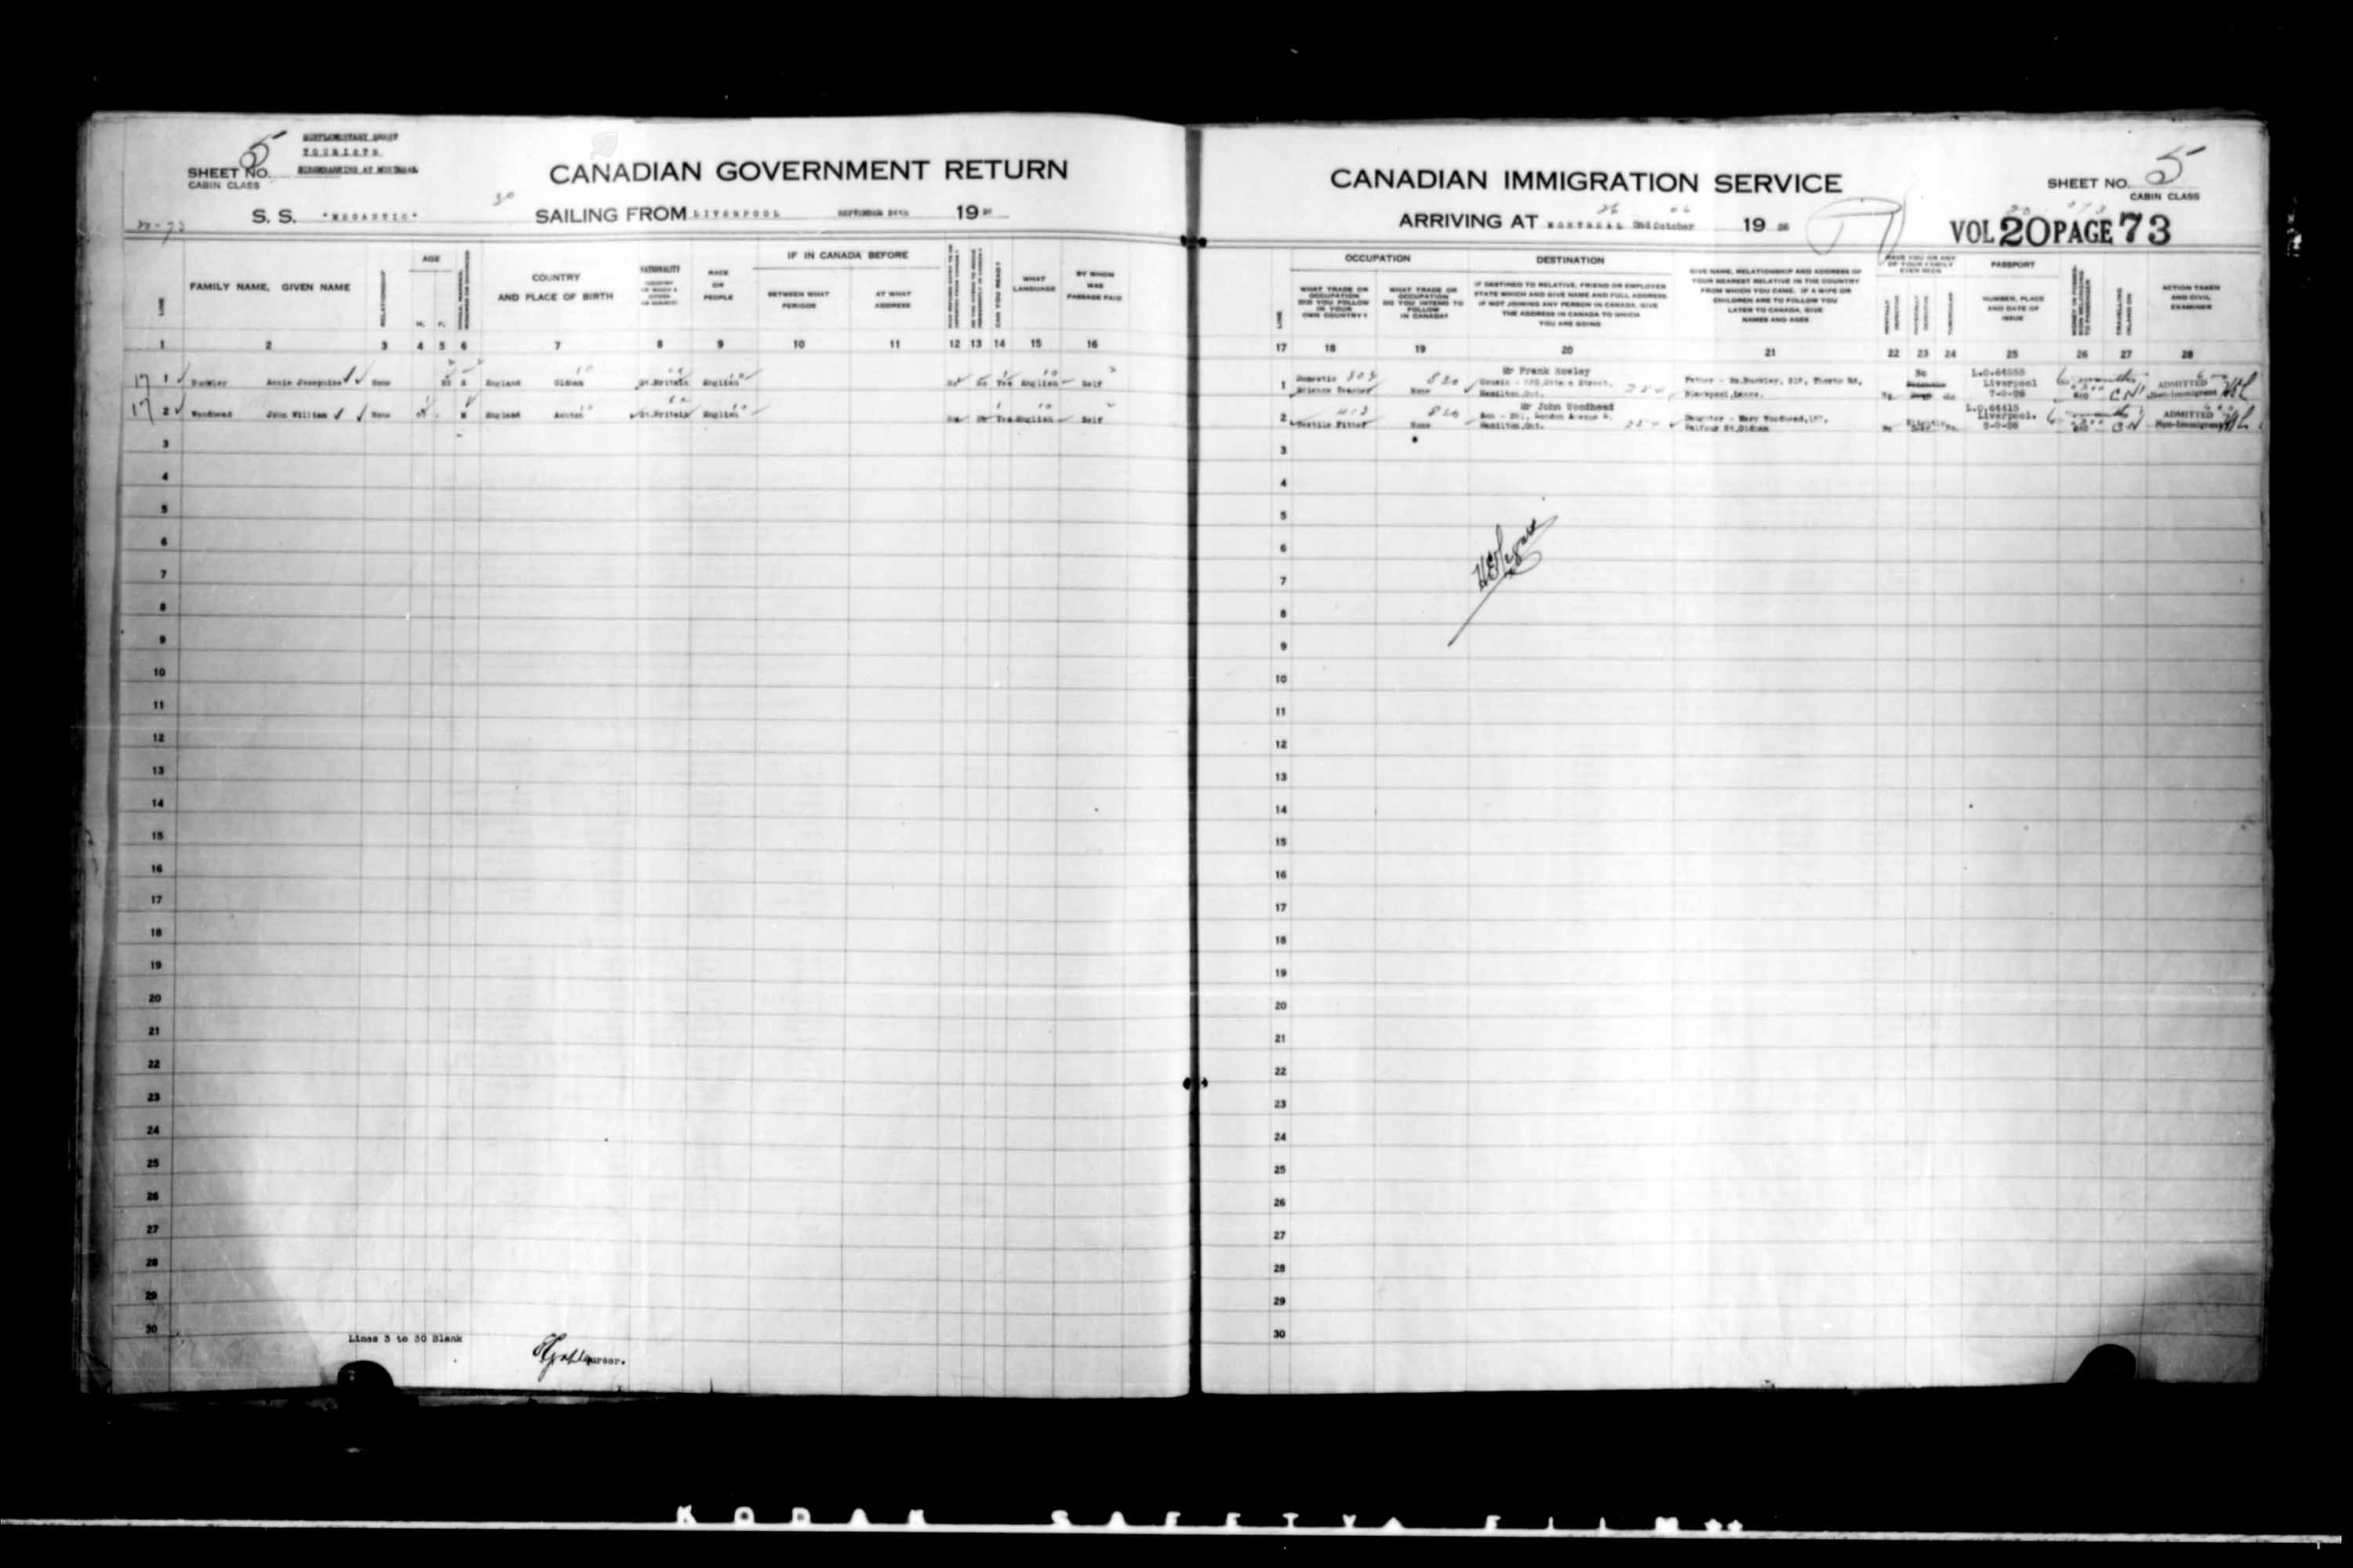 Title: Passenger Lists: Quebec City (1925-1935) - Mikan Number: 134839 - Microform: t-14728